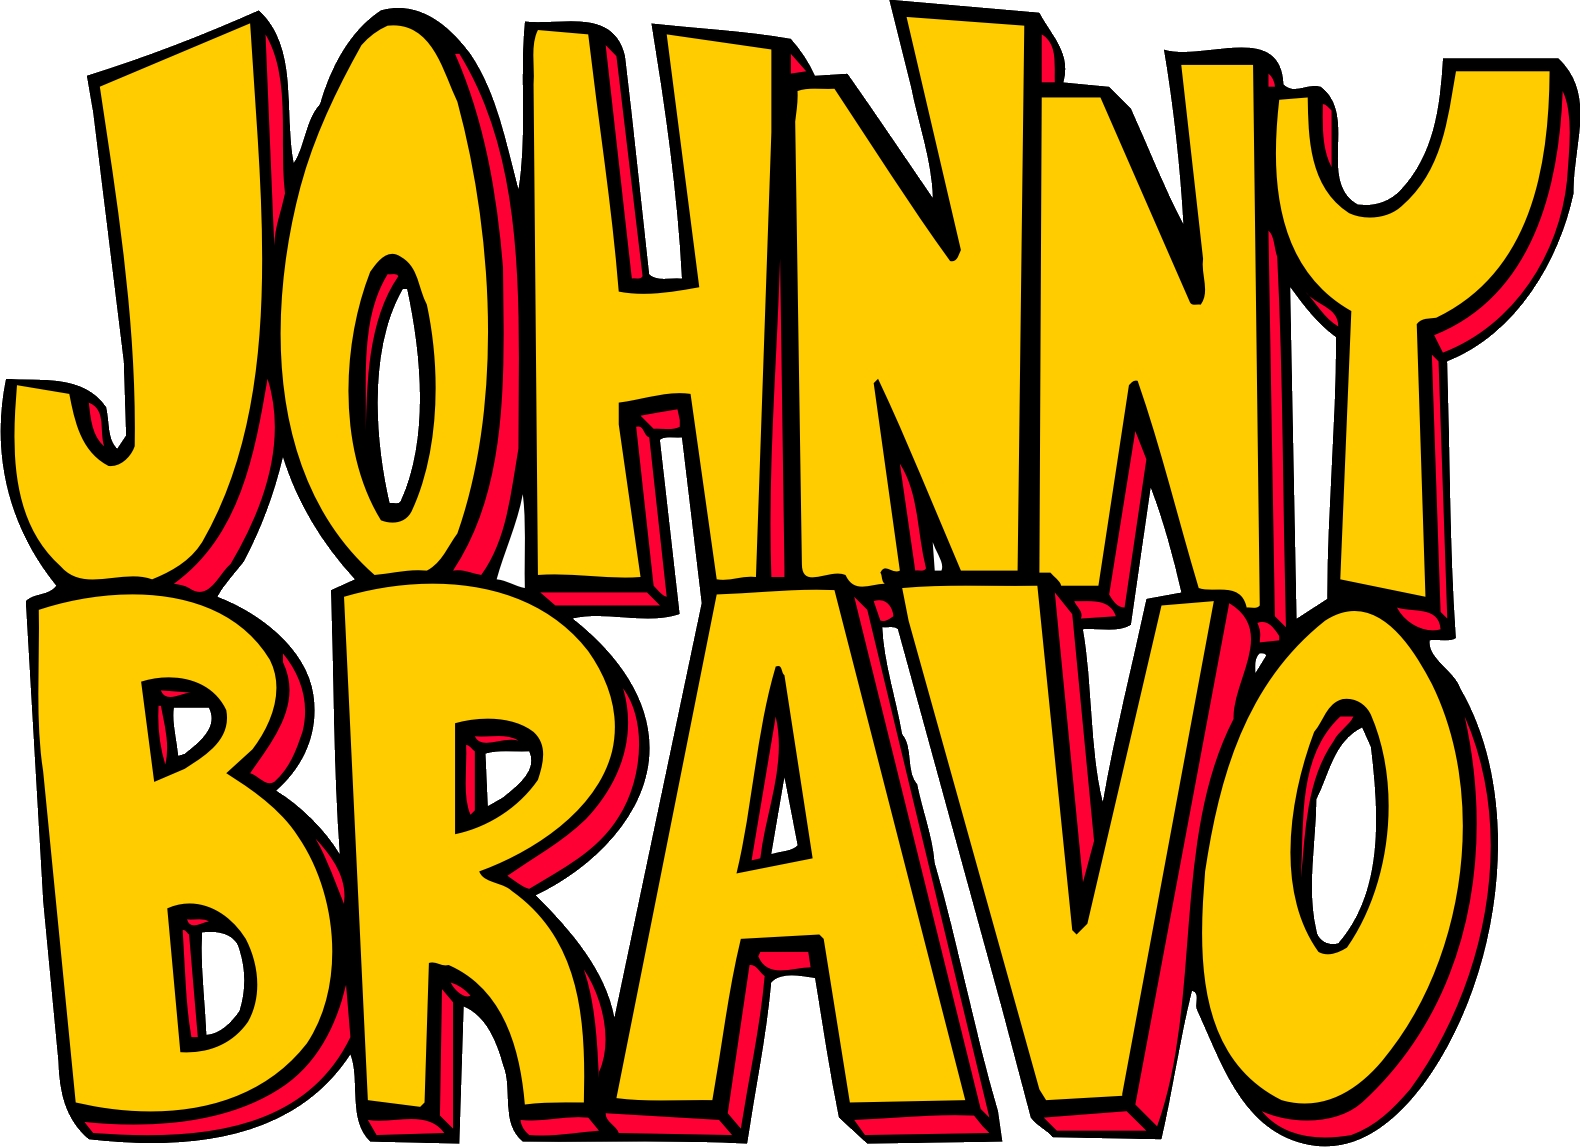 Johnny Bravo - Wikipedia